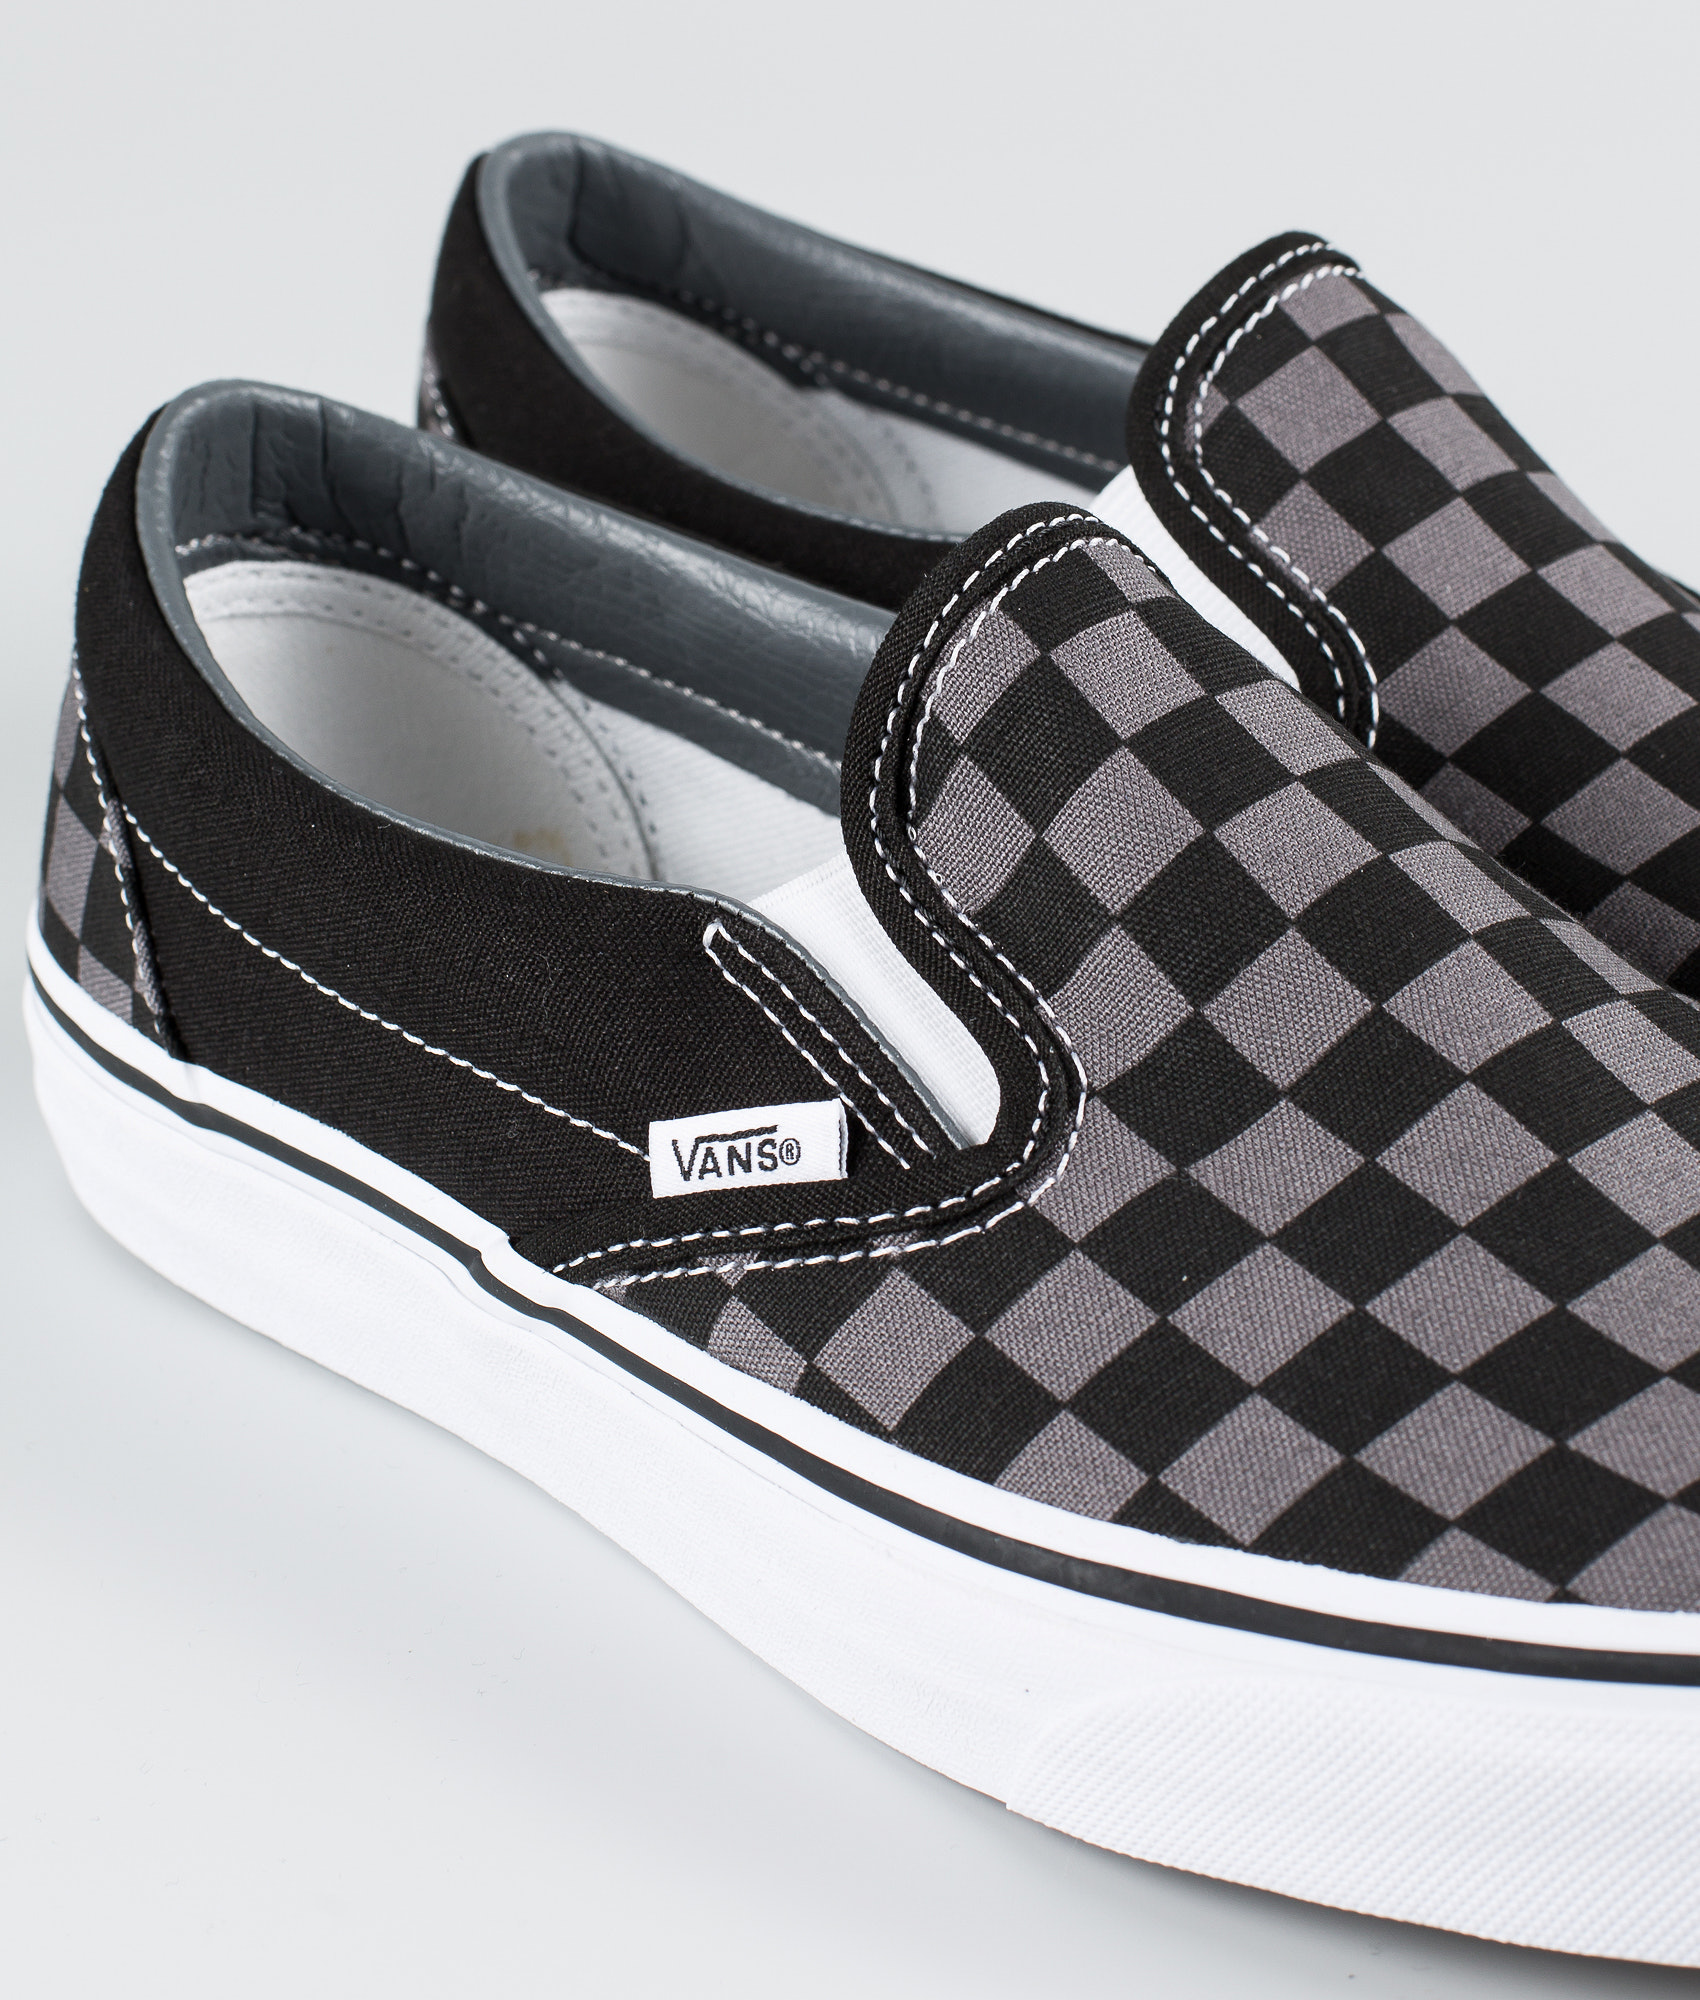 510a58f69188 Vans Classic Slip-On Shoes Black/Pewter Checkerboard - Ridestore.com